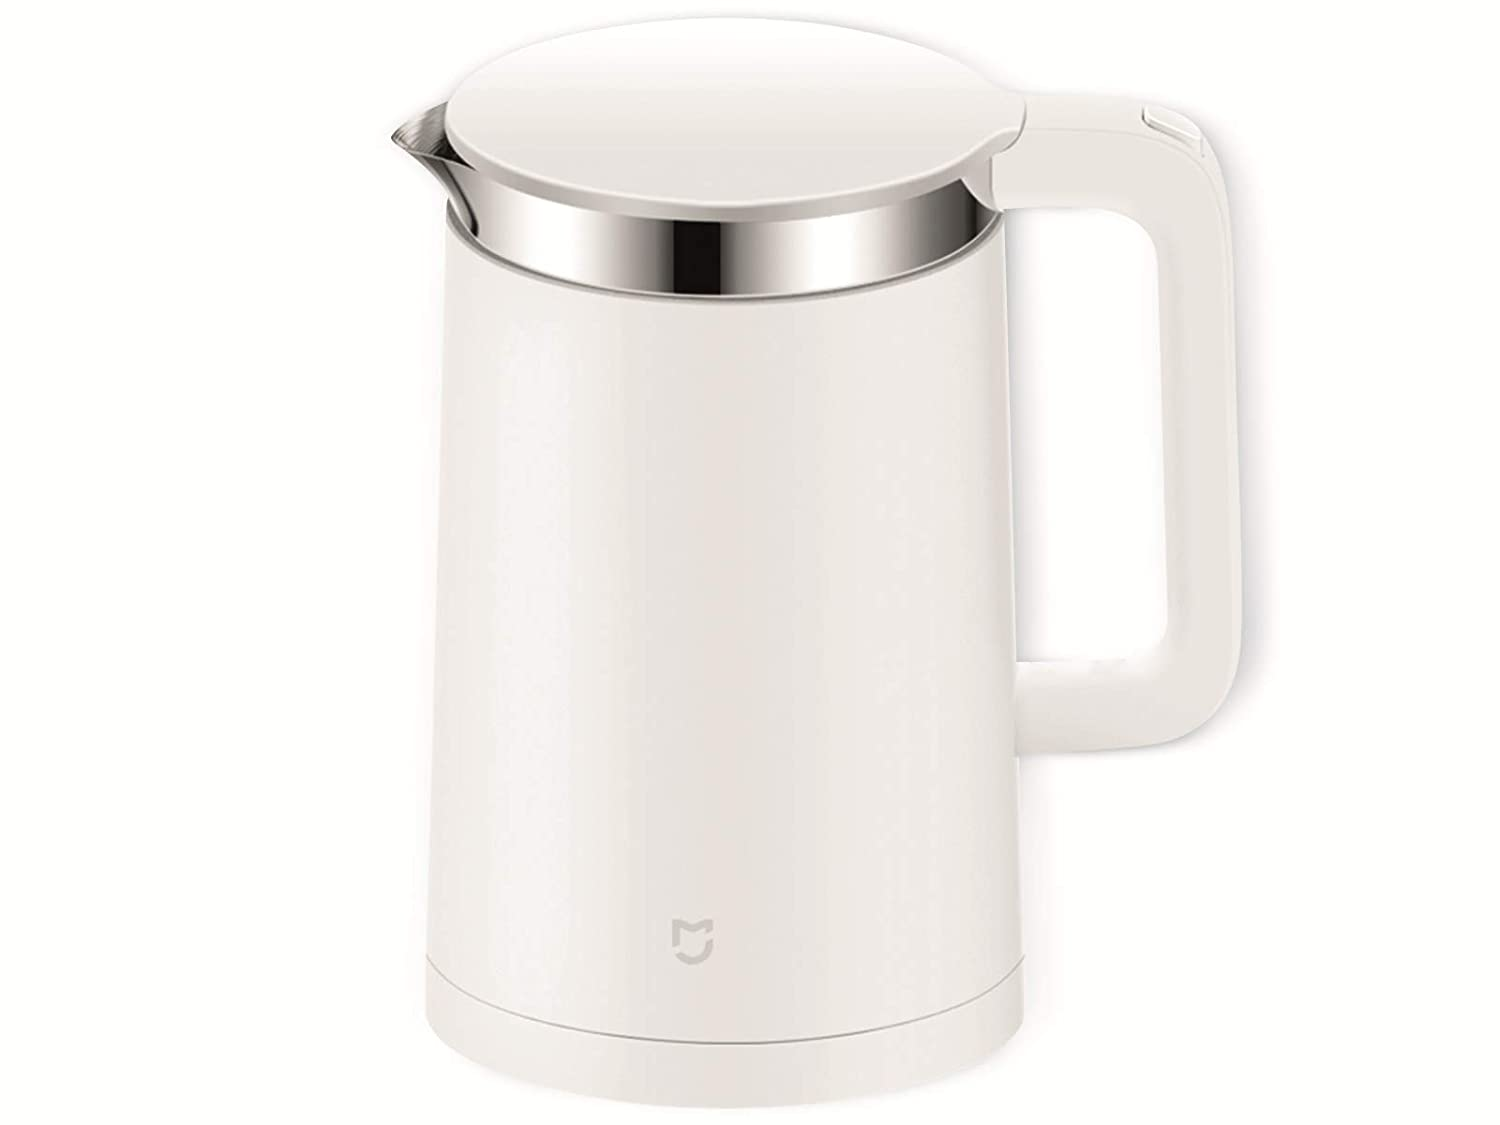 color blanco Hervidor el/éctrico con interior de acero inoxidable 1800W 1.5 litros Xiaomi Mi Electric Kettle SKV4035GL EU version